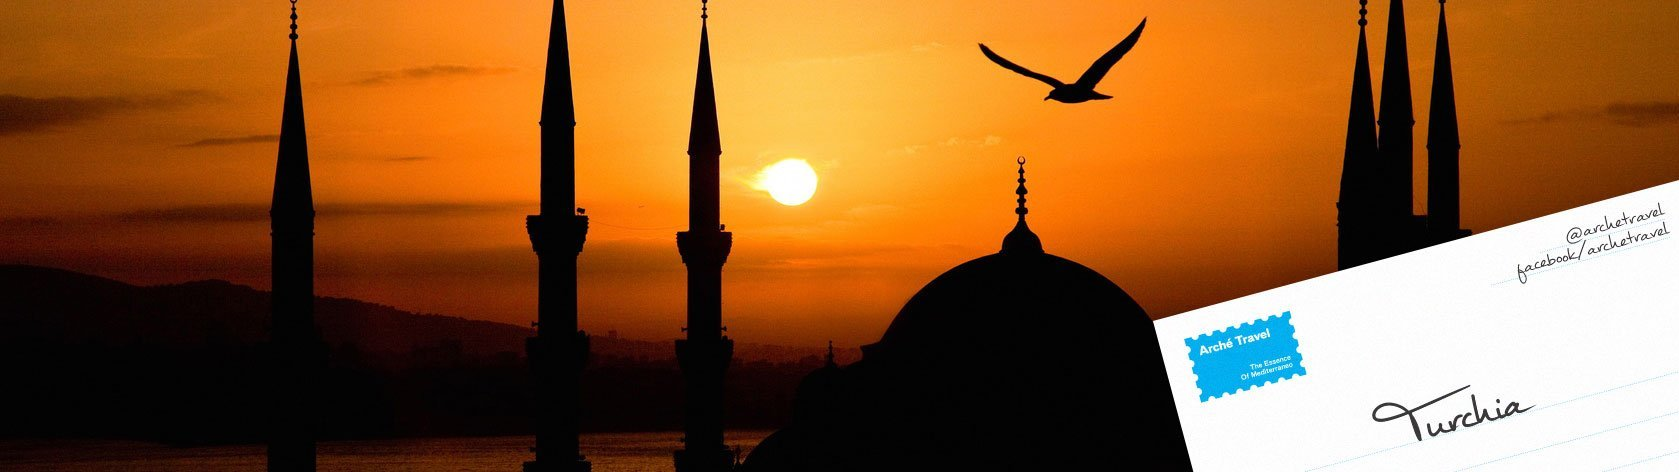 Tour Operator Turchia - Viaggi Turchia - Tour Turchia - Arché Travel